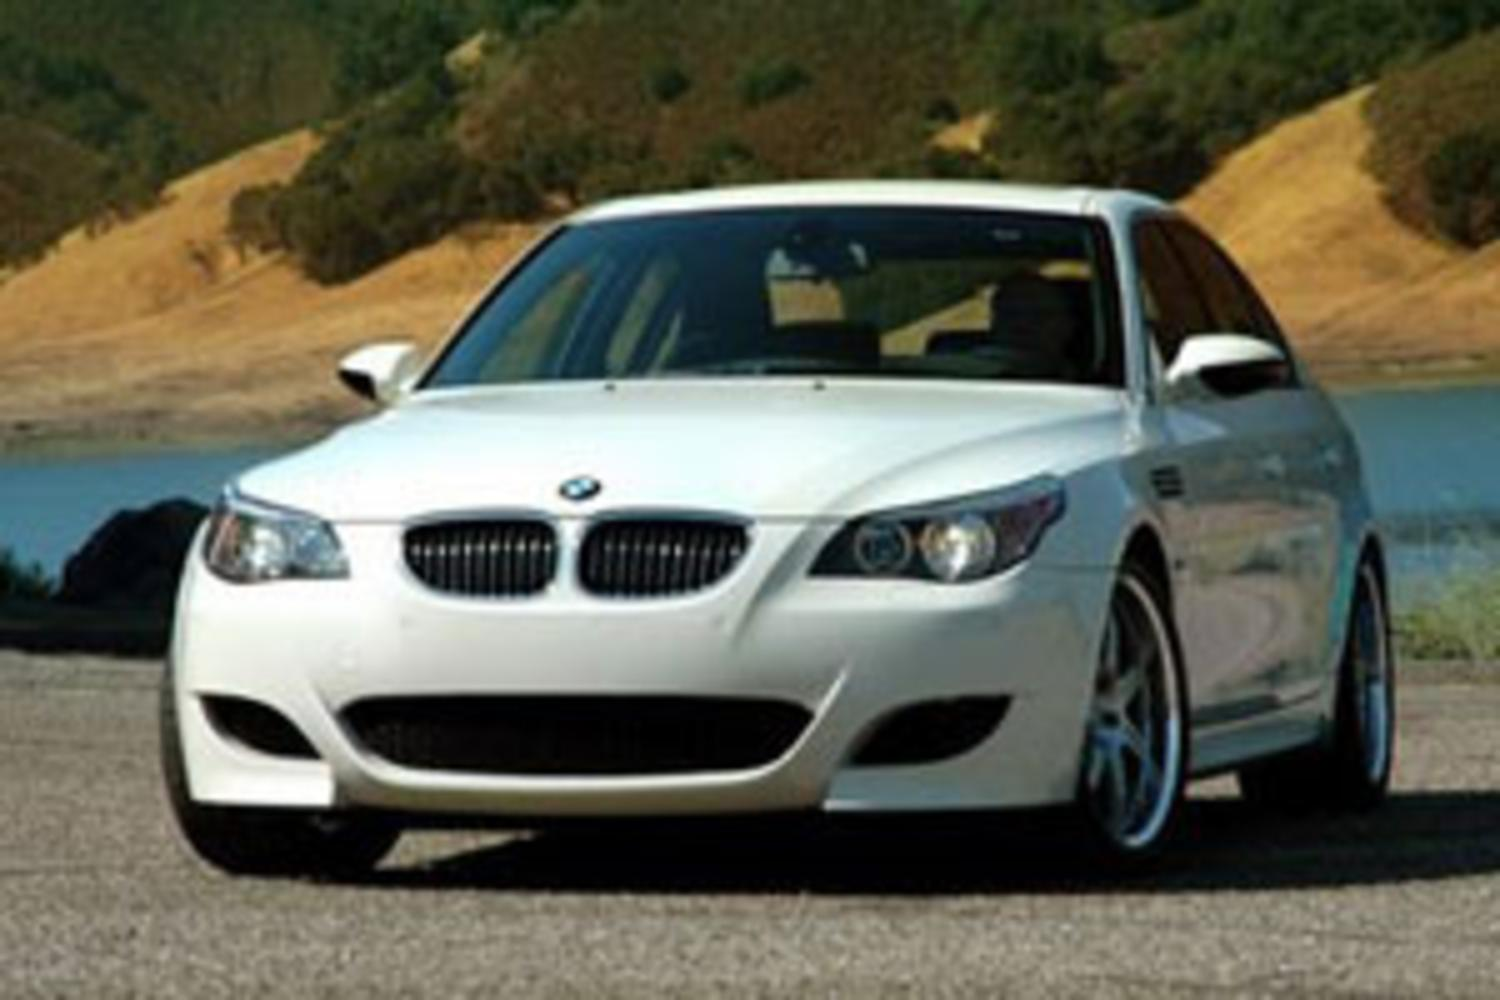 BMW 535i - huge collection of cars, auto news and reviews, car vitals,